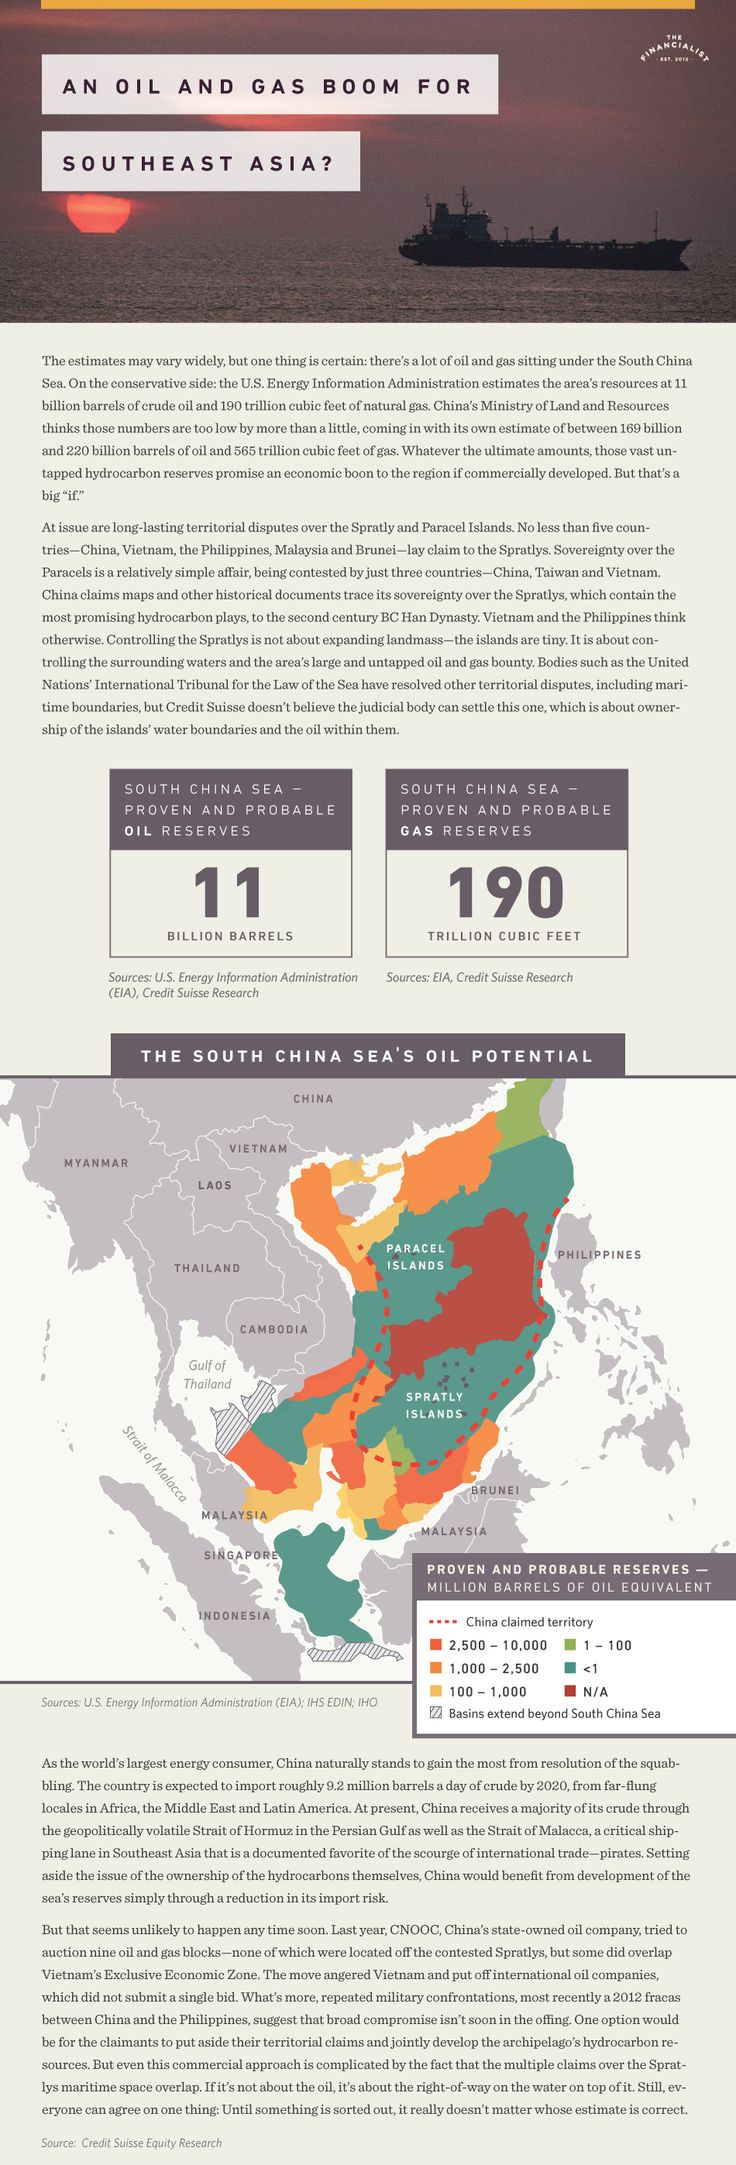 South East Asia Oil and Gas Boom